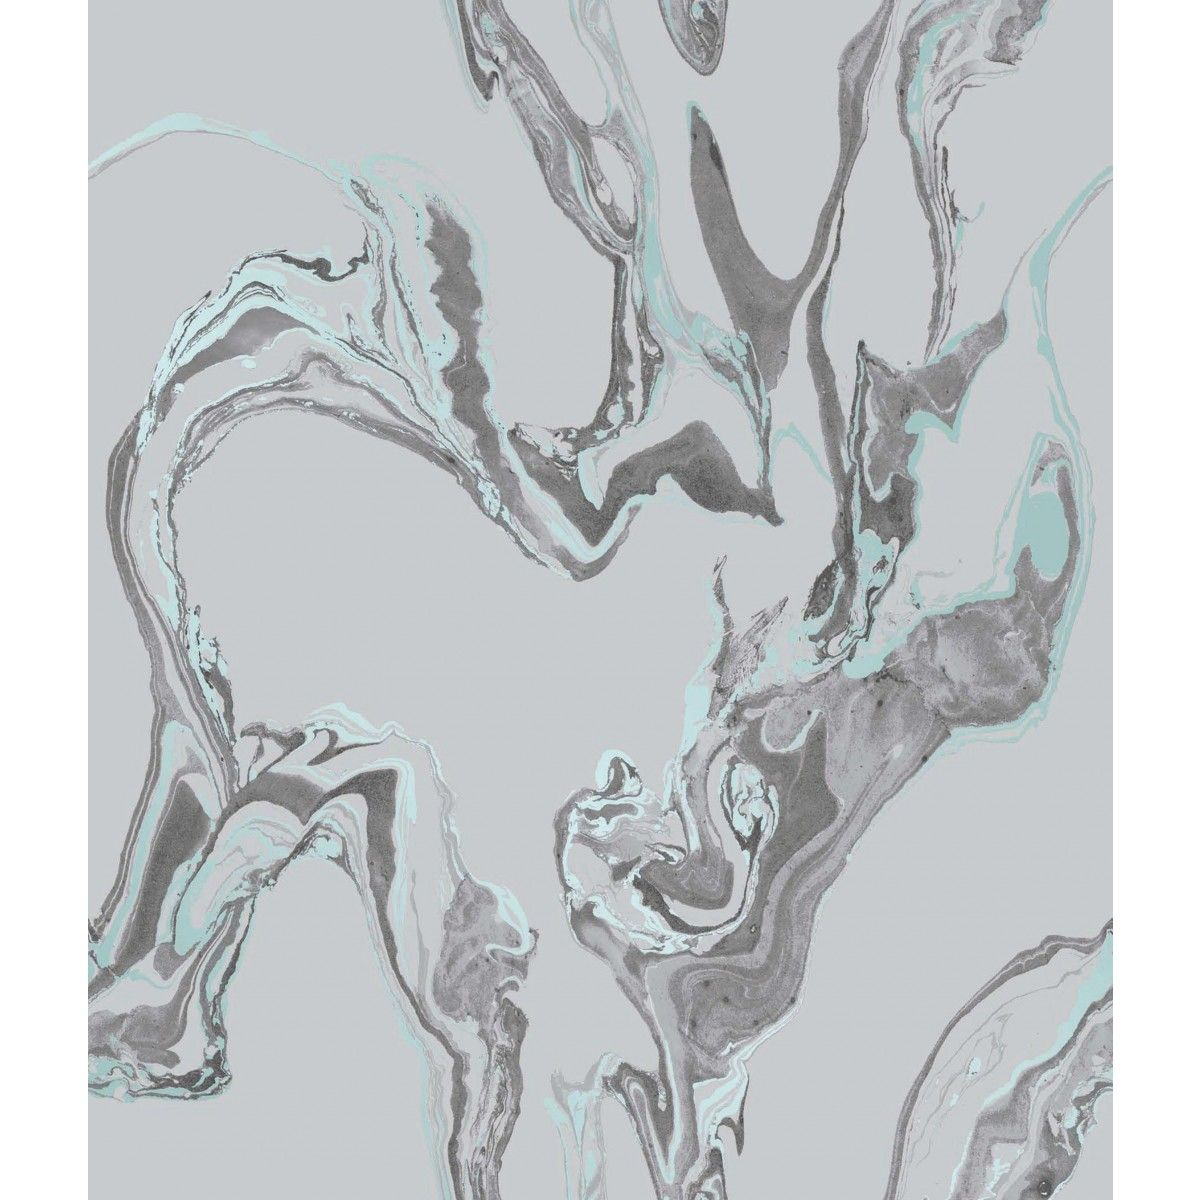 Add Tempaper Removable Wallpaper MARBLE in STREAM to any update any space.  1. Peel the self-adhesive backing 2. Apply to the space 3. Sit back and enjoy.   Shop it a tempaperdesigns.com